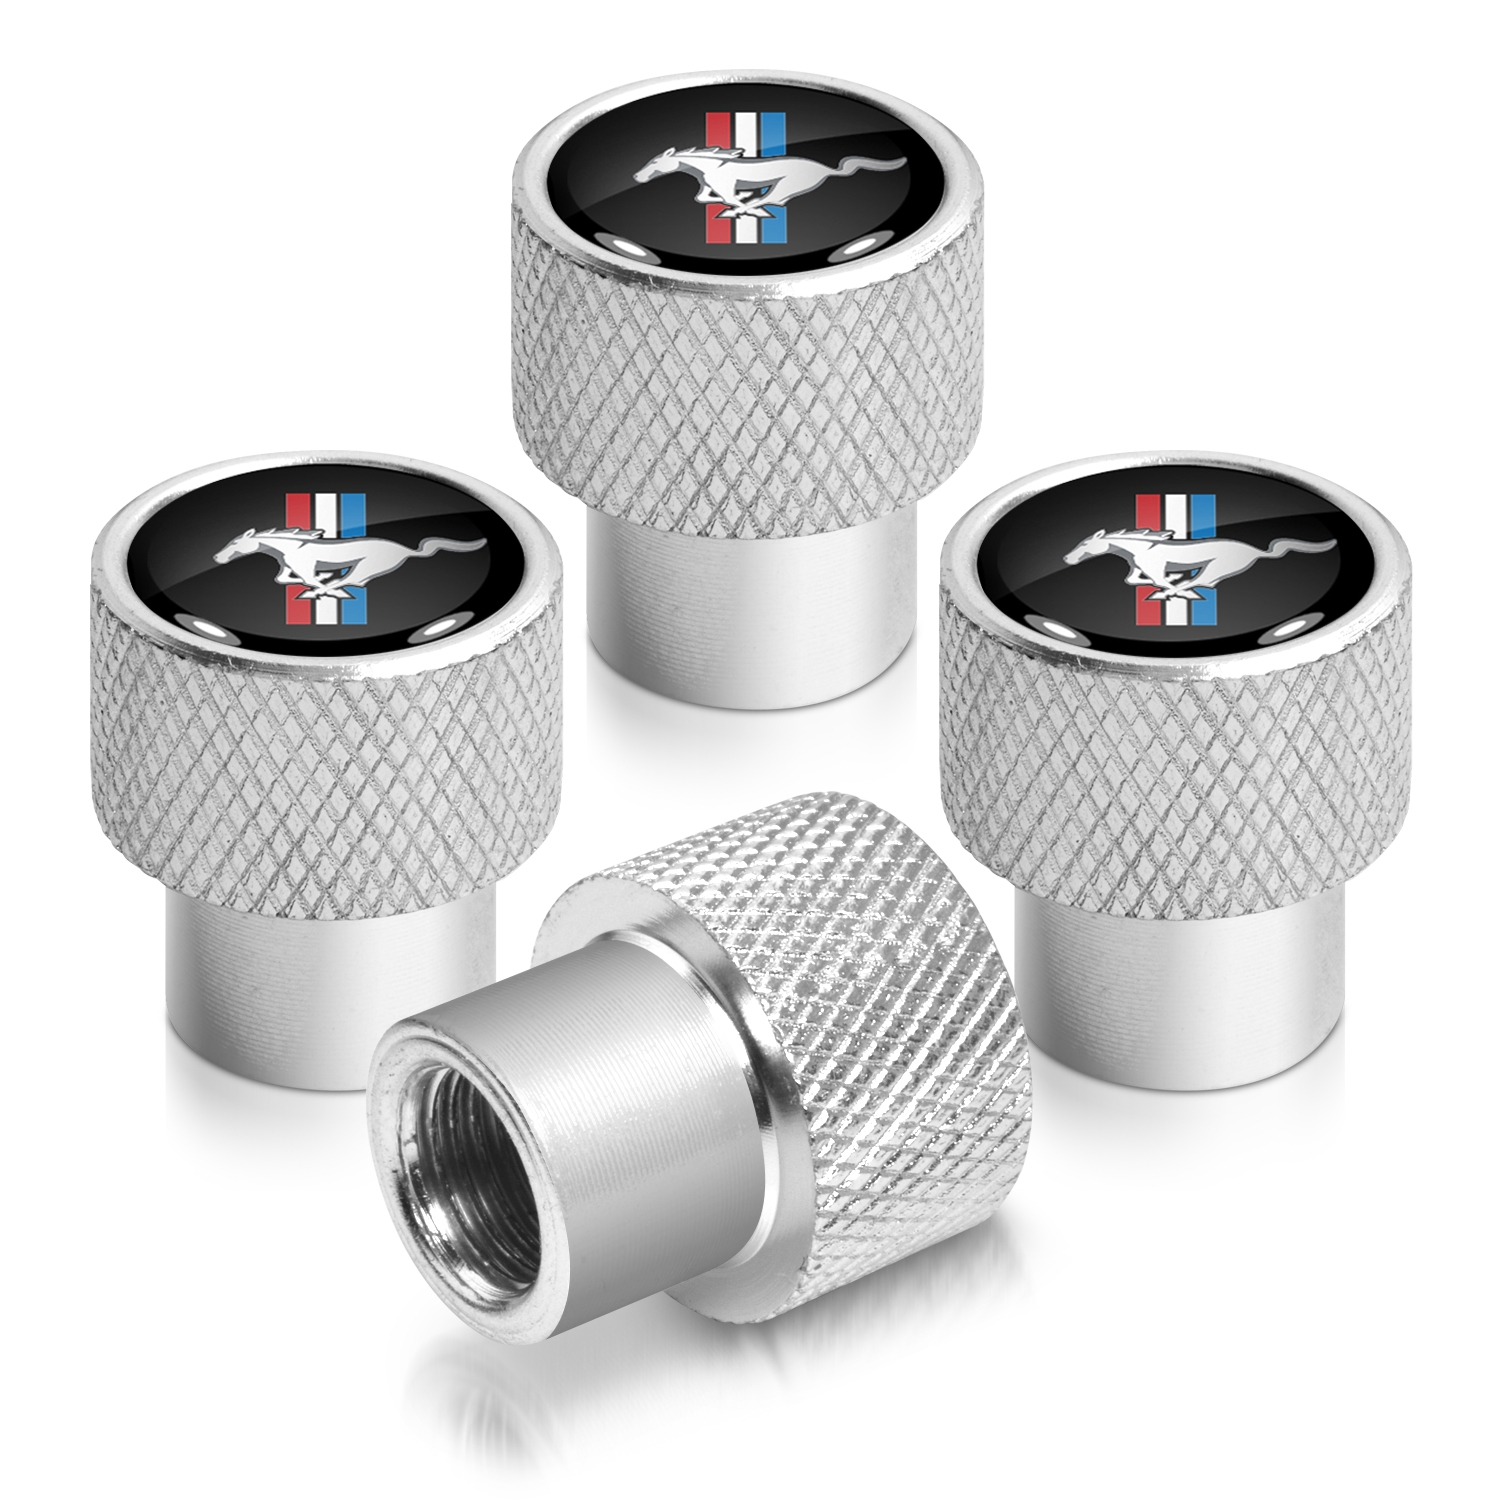 Ford Mustang Tri-Bar in Black on Silver Chrome Aluminum Tire Valve Stem Caps